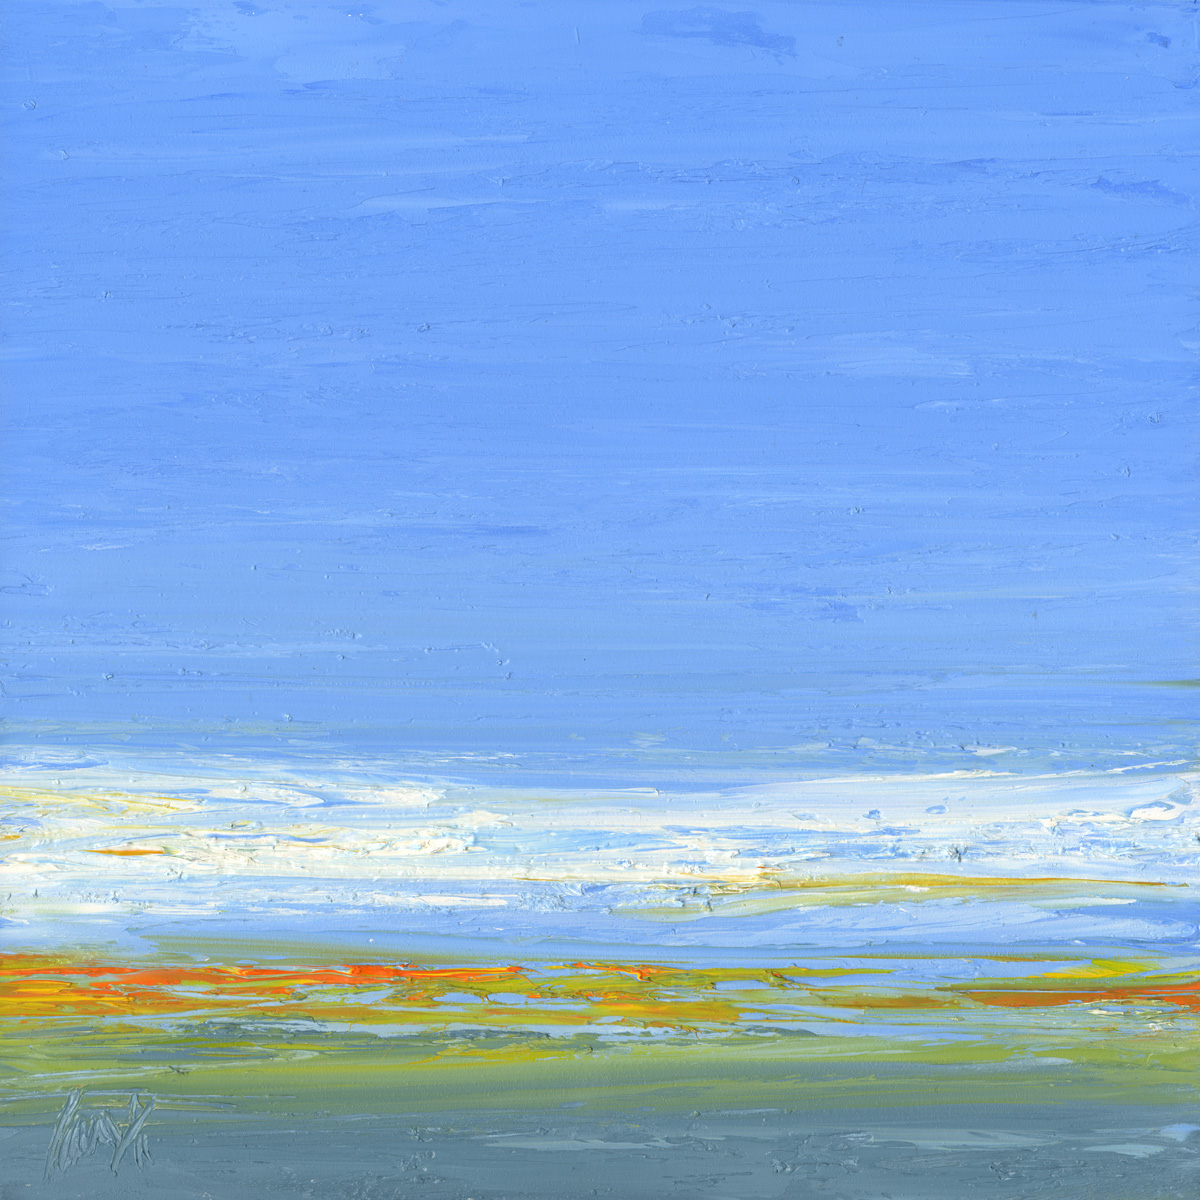 At The Horizon - orange and blue sky, oil on board, 12 by 12 inches, 2011 - $2500 (sold)